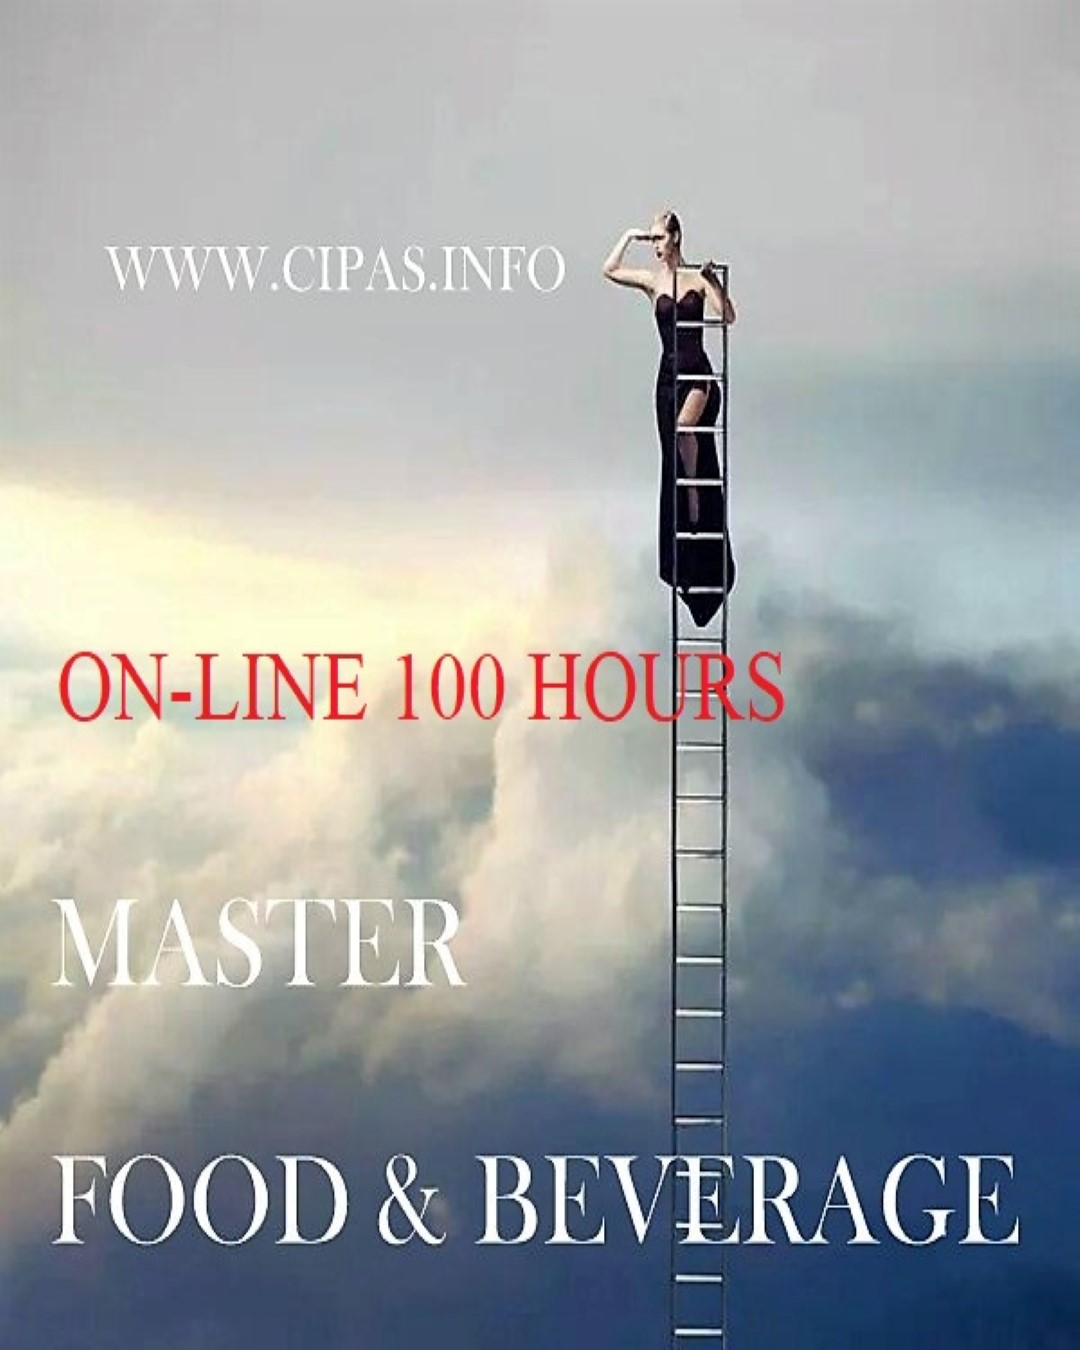 MASTER FOOD & BEVERAGE BUDGET FOOD COST CONTROLLO GESTIONE CIPAS RED (Custom).jpg